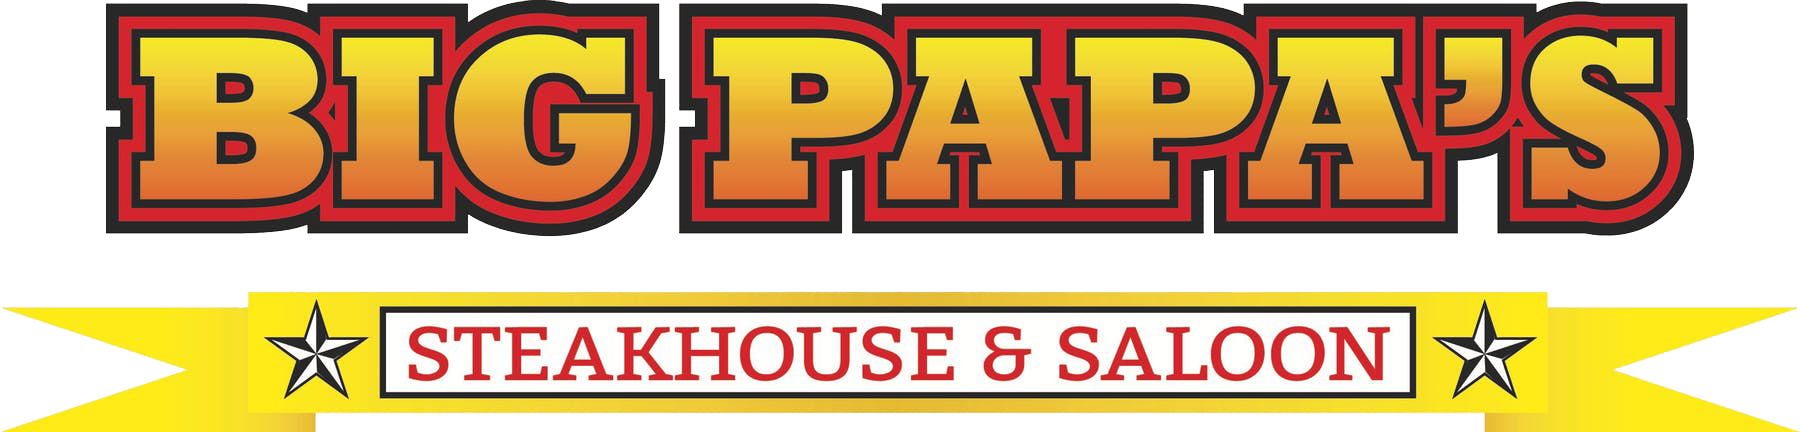 Big Papa's Steakhouse & Saloon